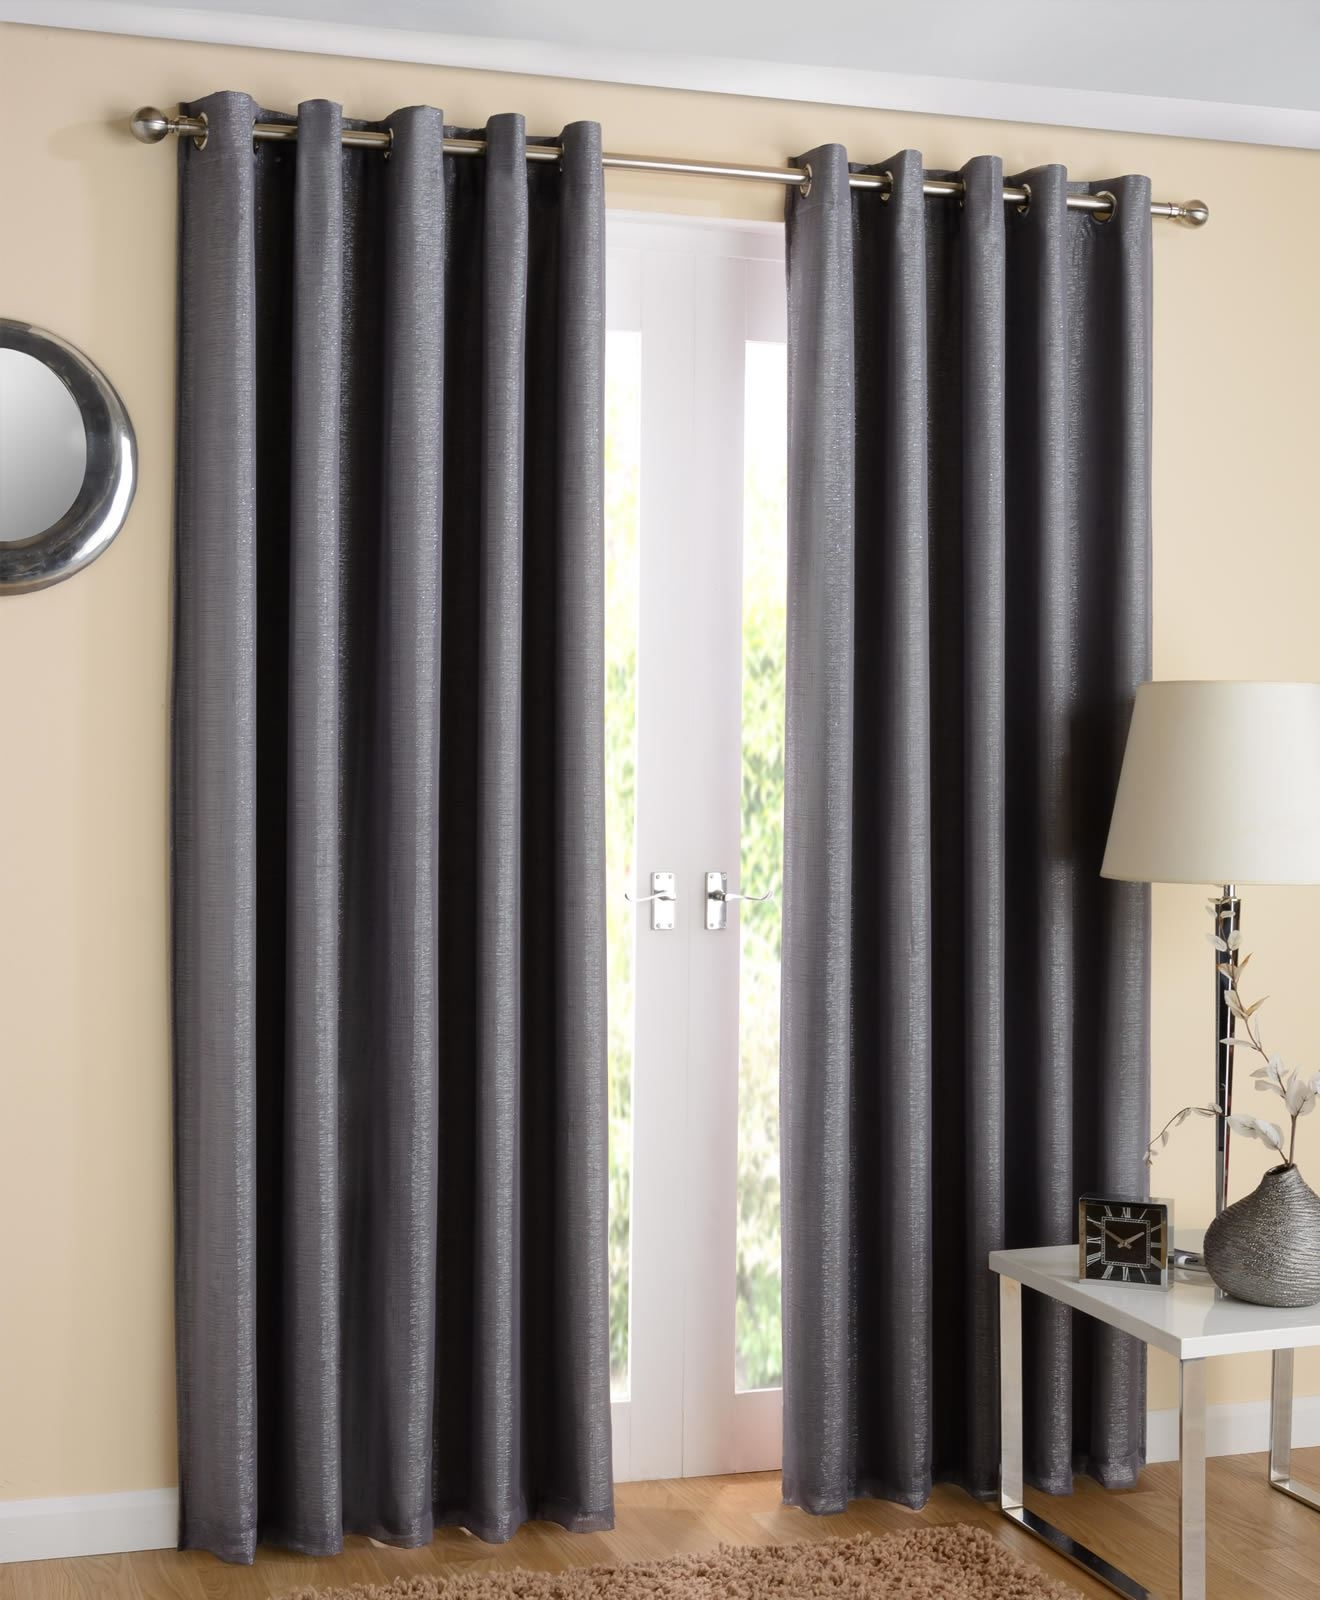 Santiago Eyelet Curtains Sparkle Lined Voiles Ready Made Pairs Inside Grey Eyelet Curtains (Image 19 of 25)